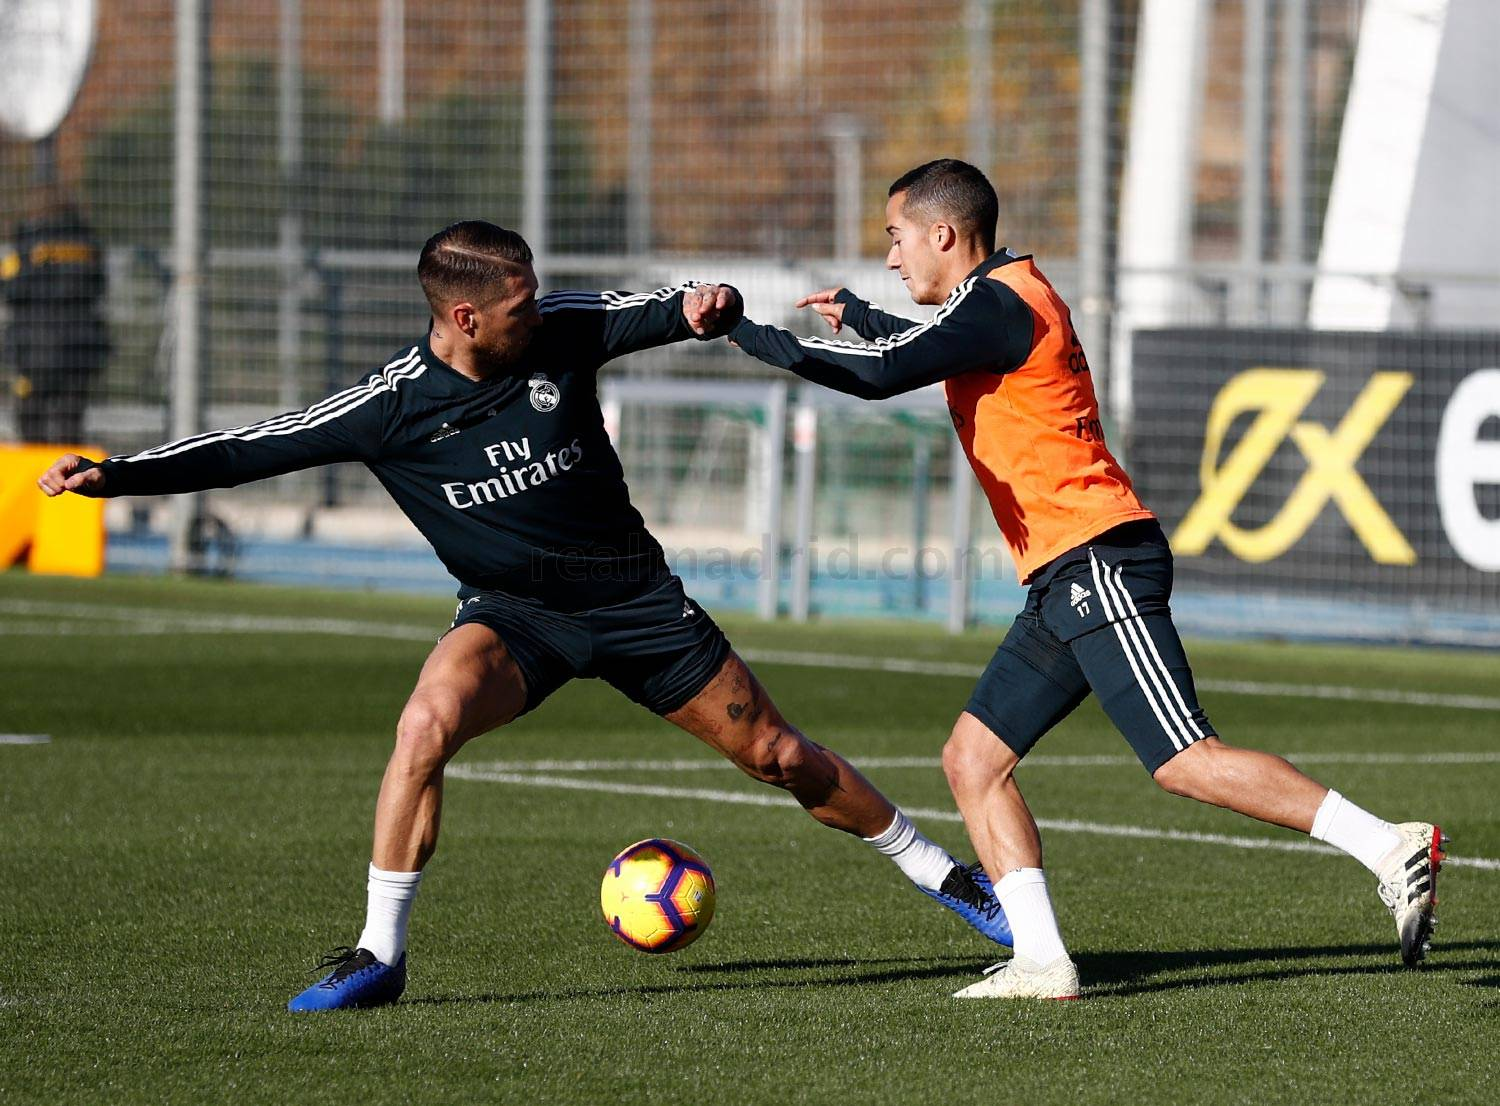 Real Madrid - Entrenamiento del Real Madrid - 07-12-2018